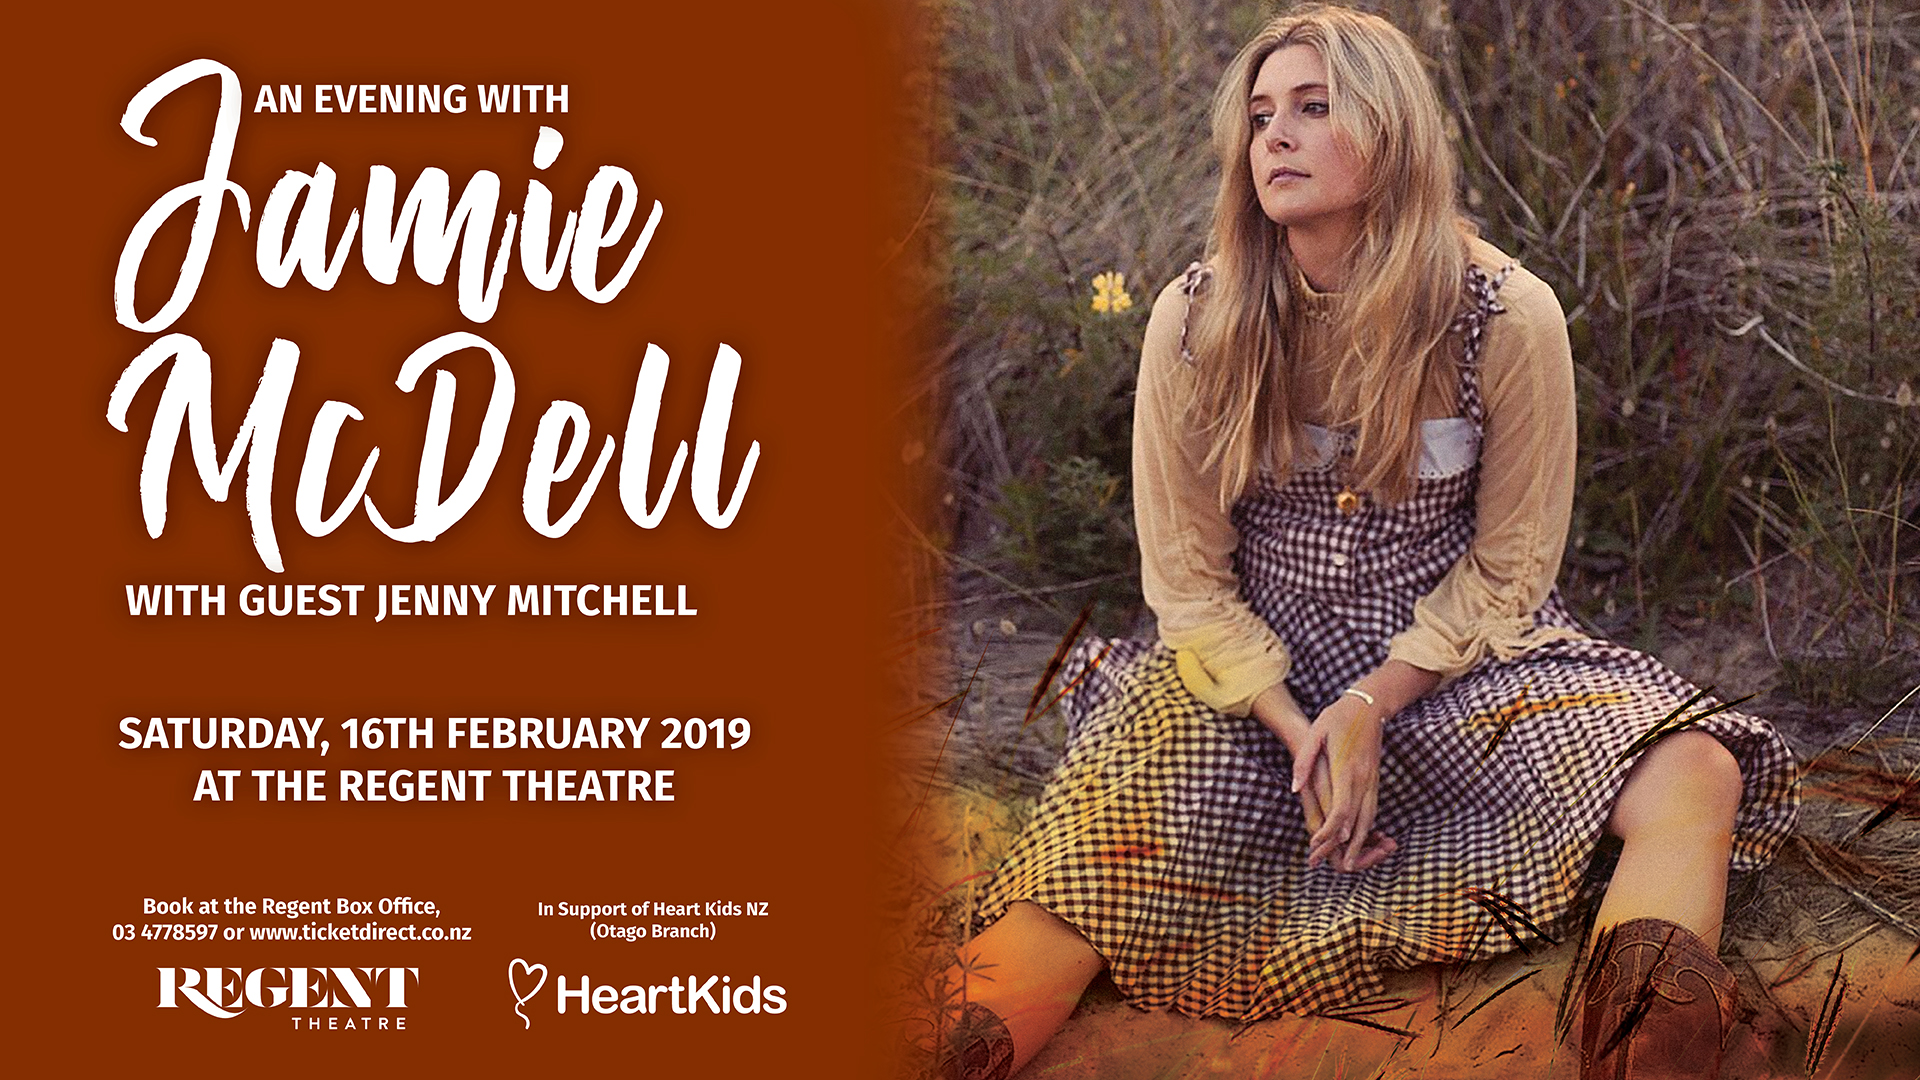 An Evening With Jamie Mcdell and Guest Jenny Mitchell